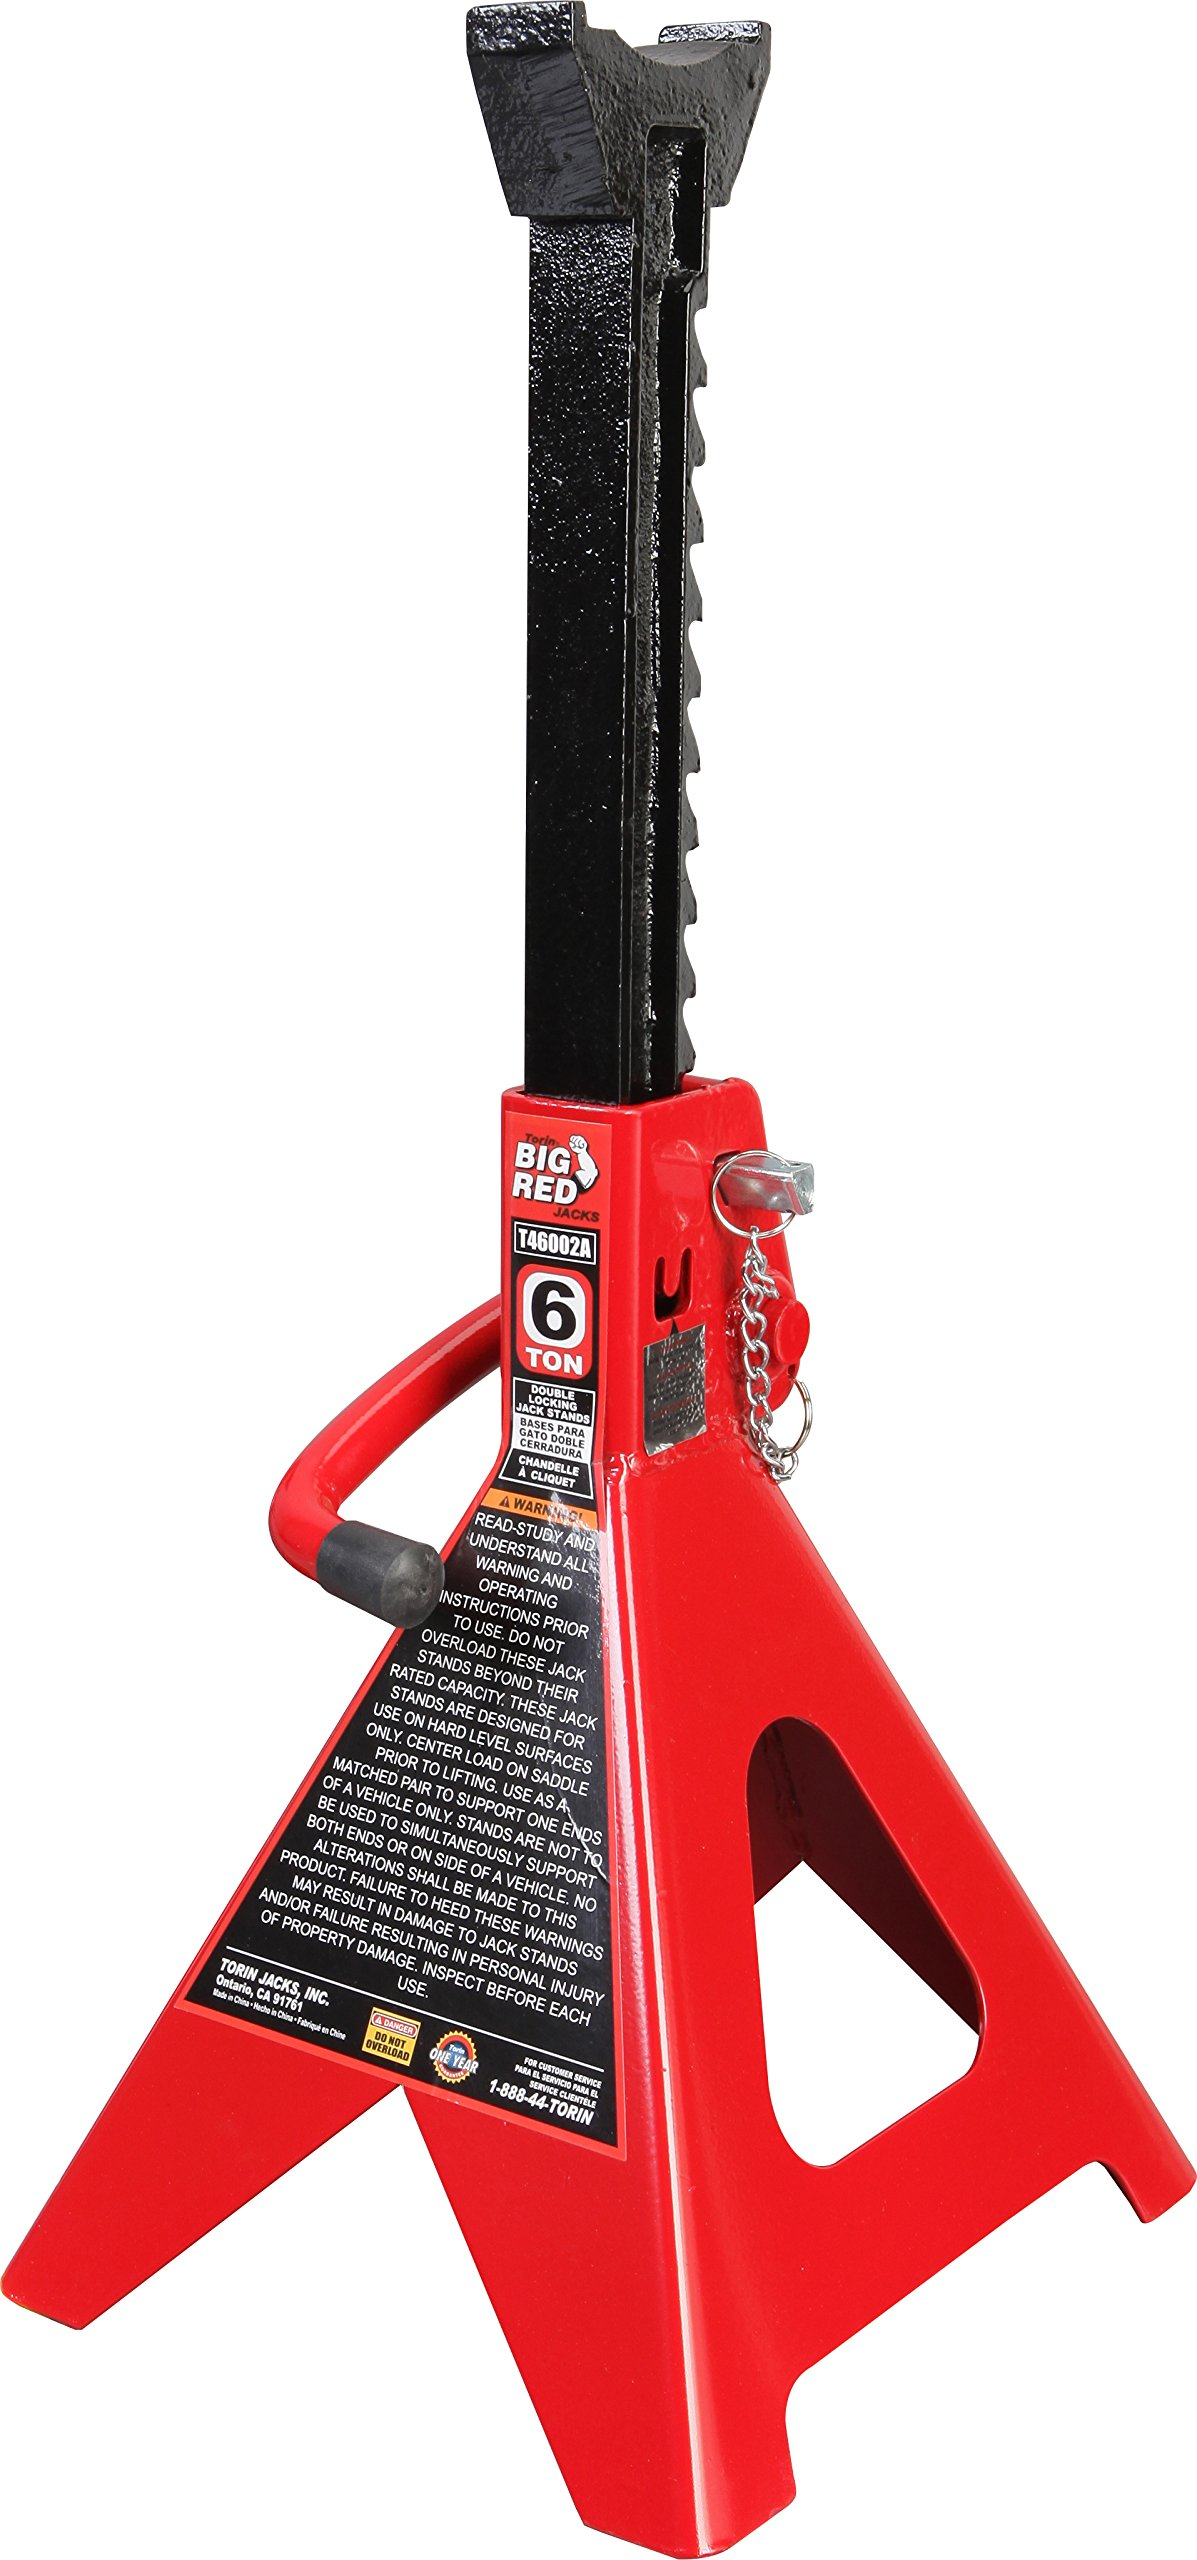 Torin Big Red Steel Jack Stands: Double Locking, 6 Ton Capacity, 1 Pair by Torin (Image #3)